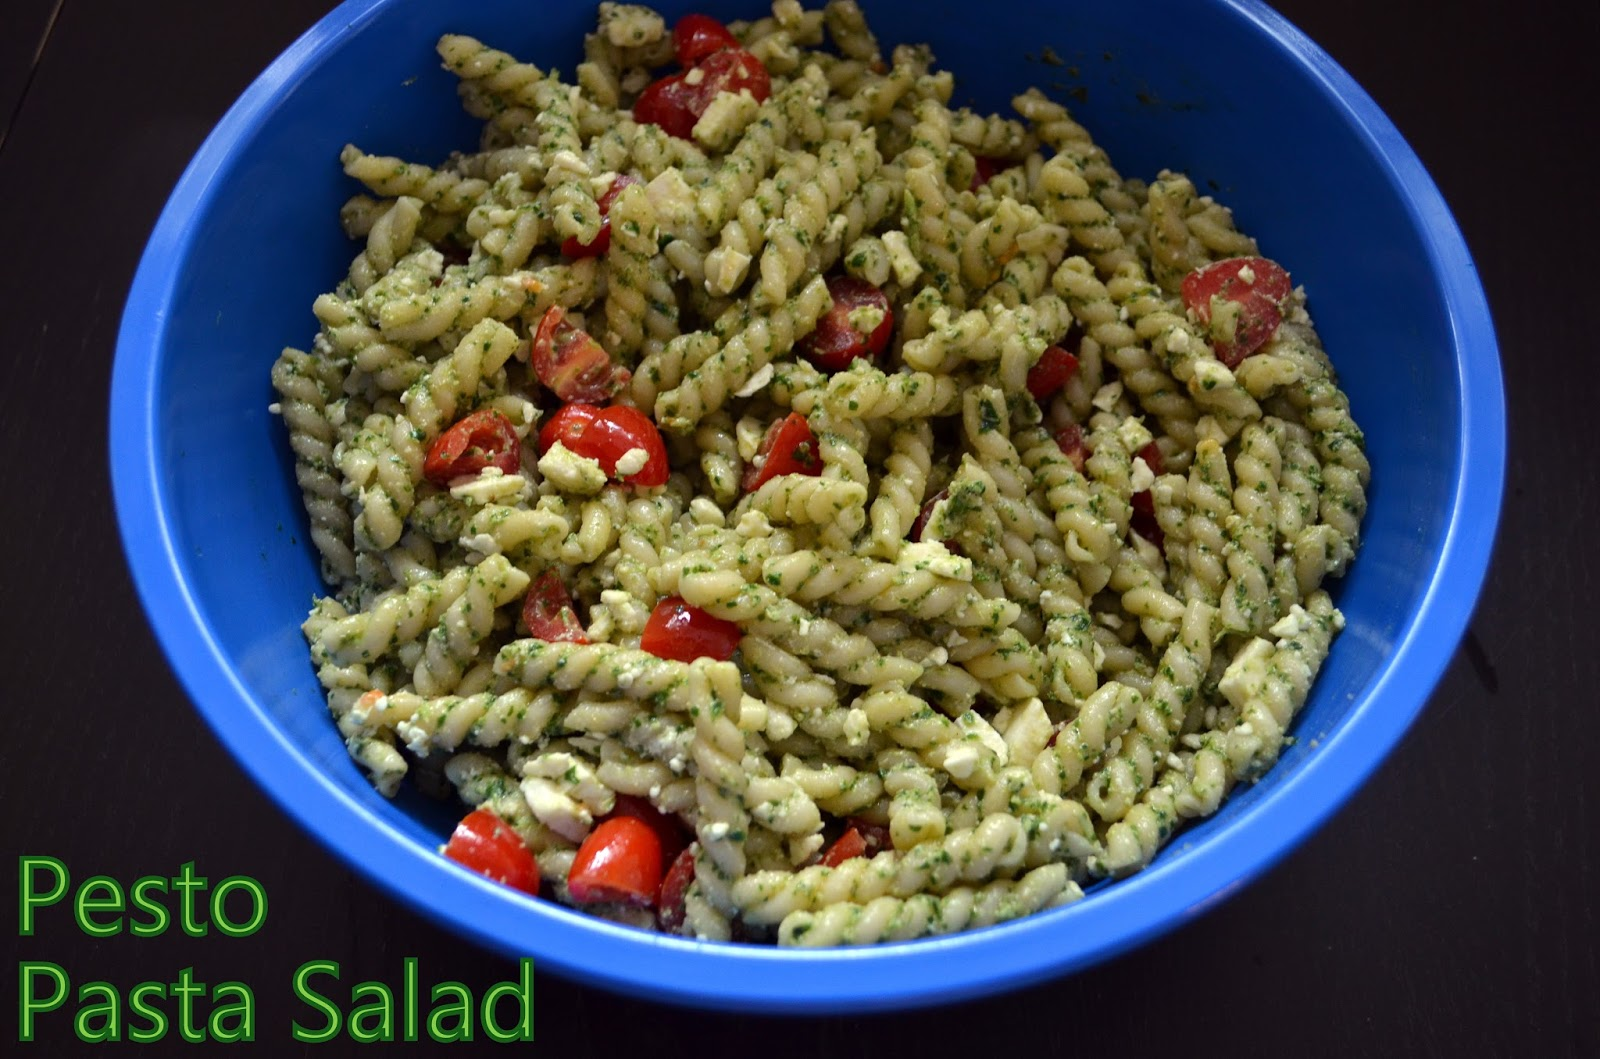 Flavors by Four: Pesto Pasta Salad